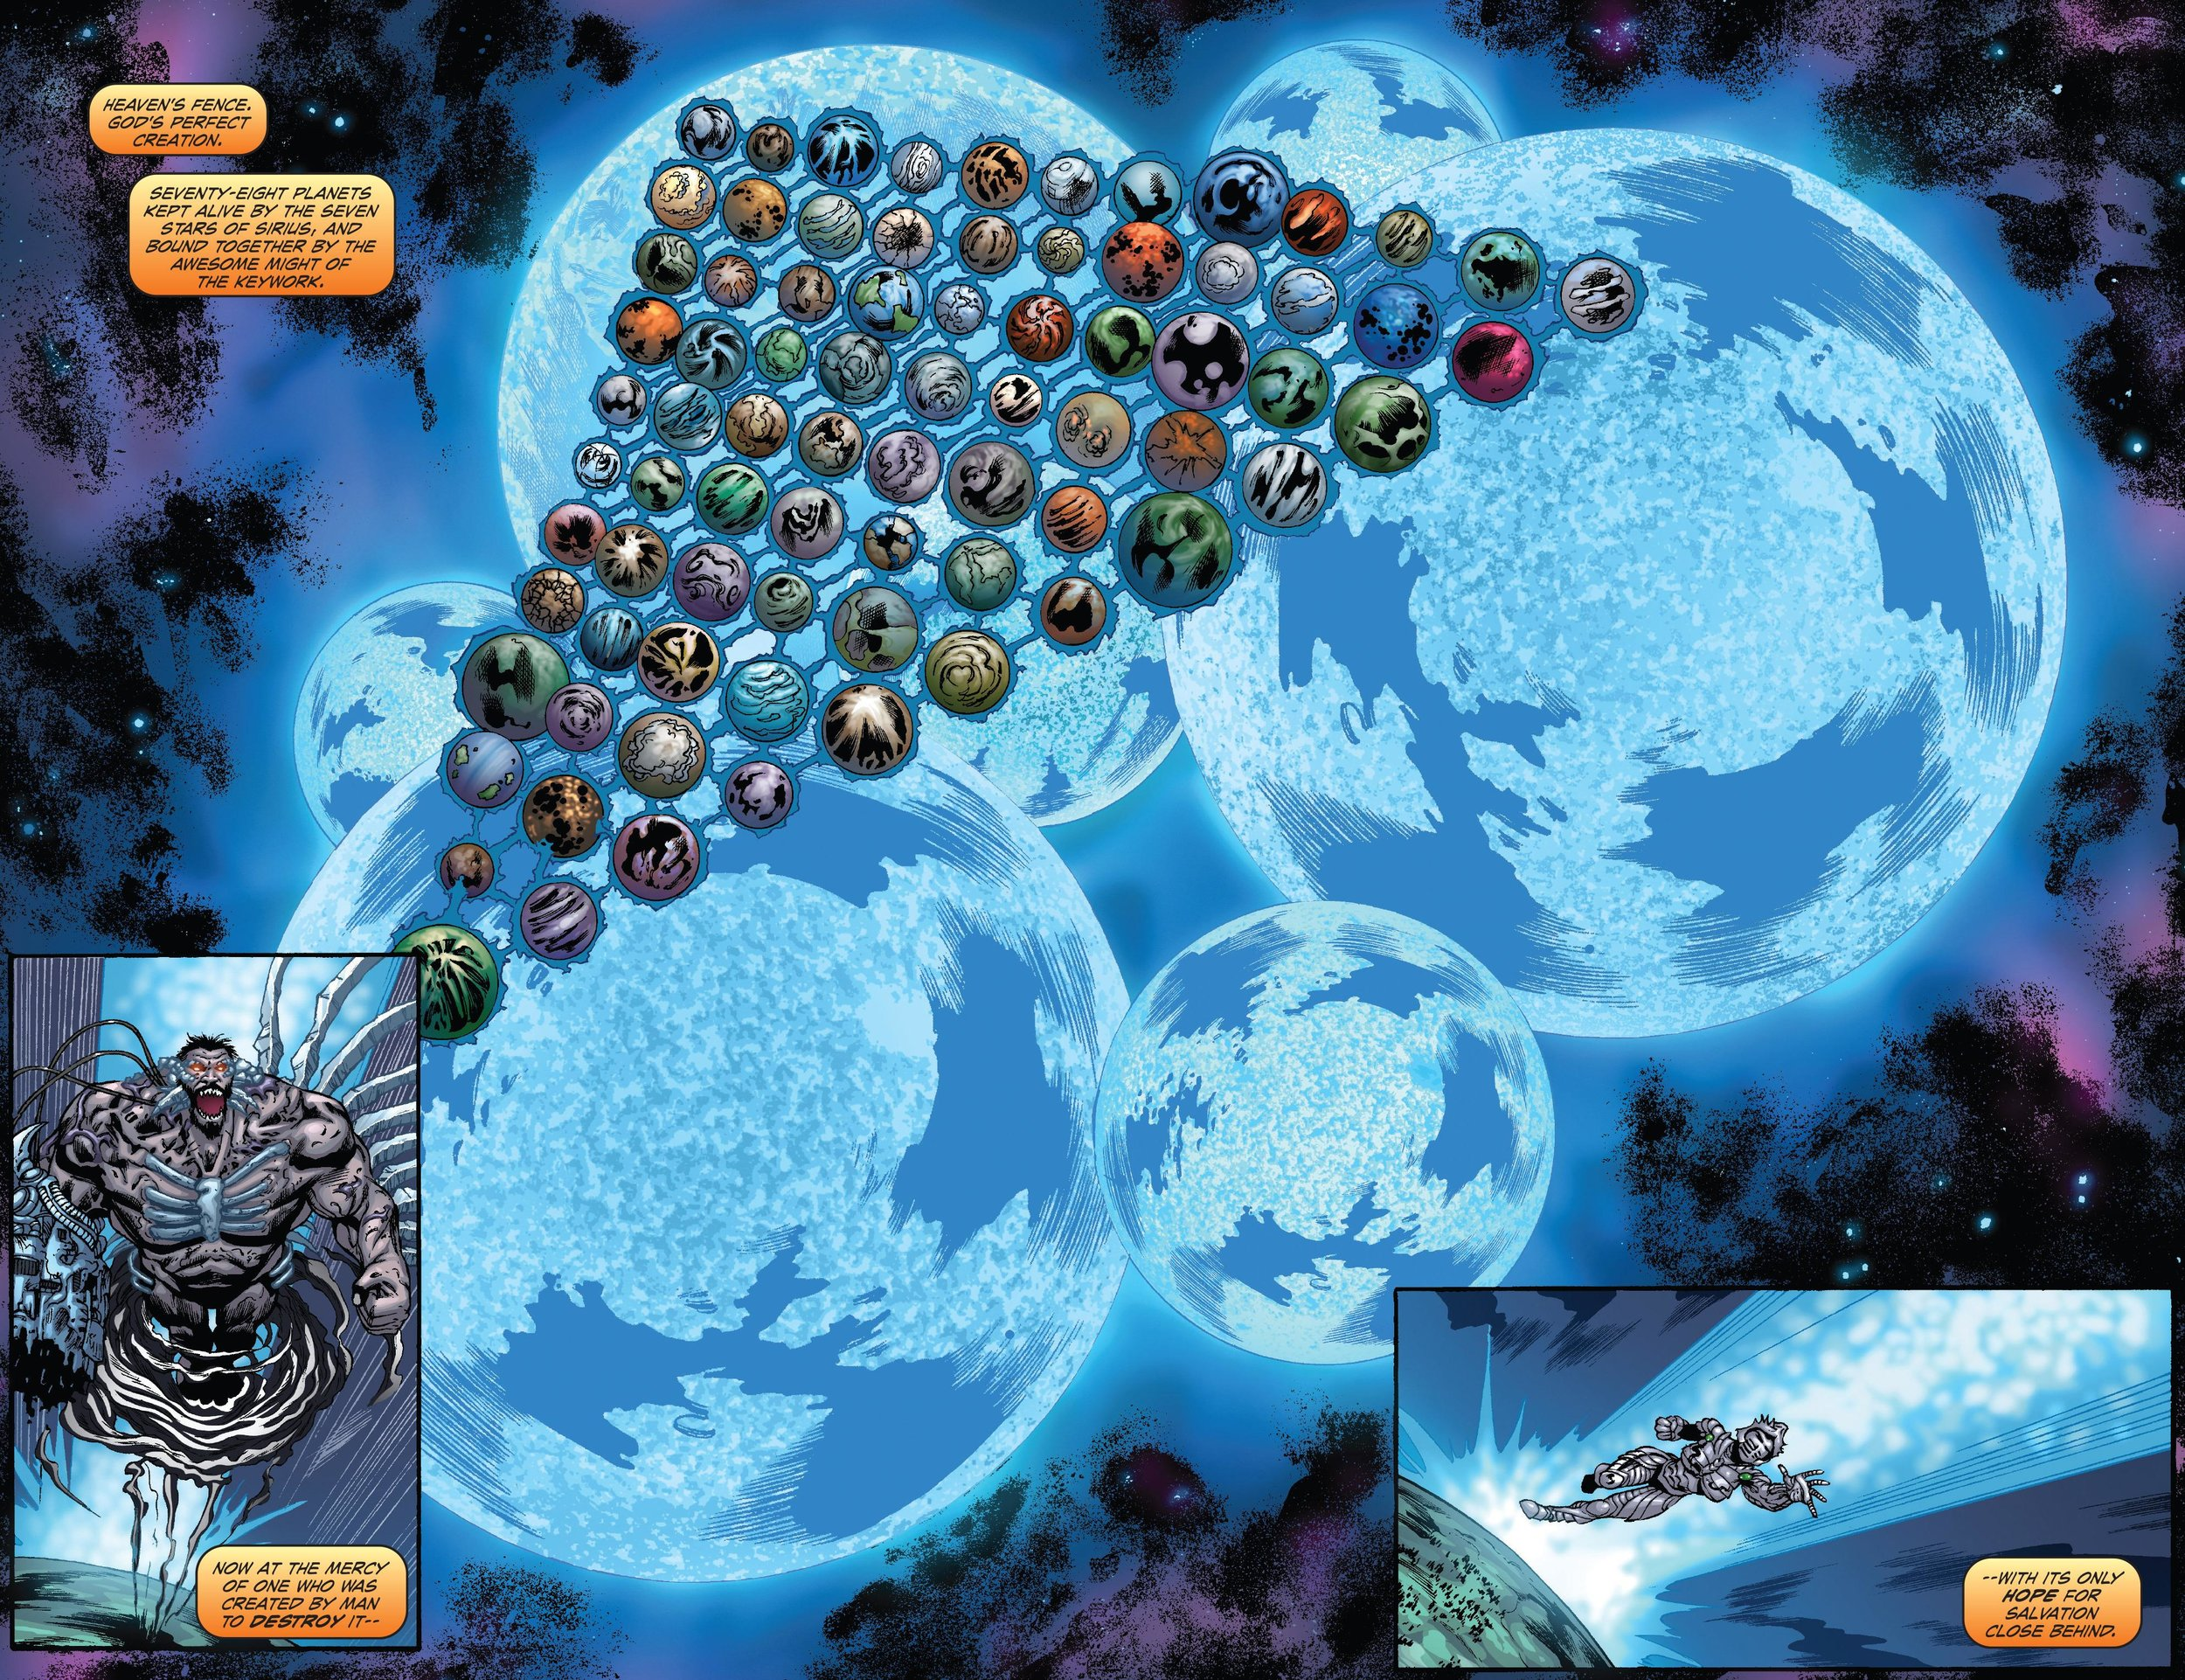 We get this Double Page Spread as they both shoot the hell off  into space .